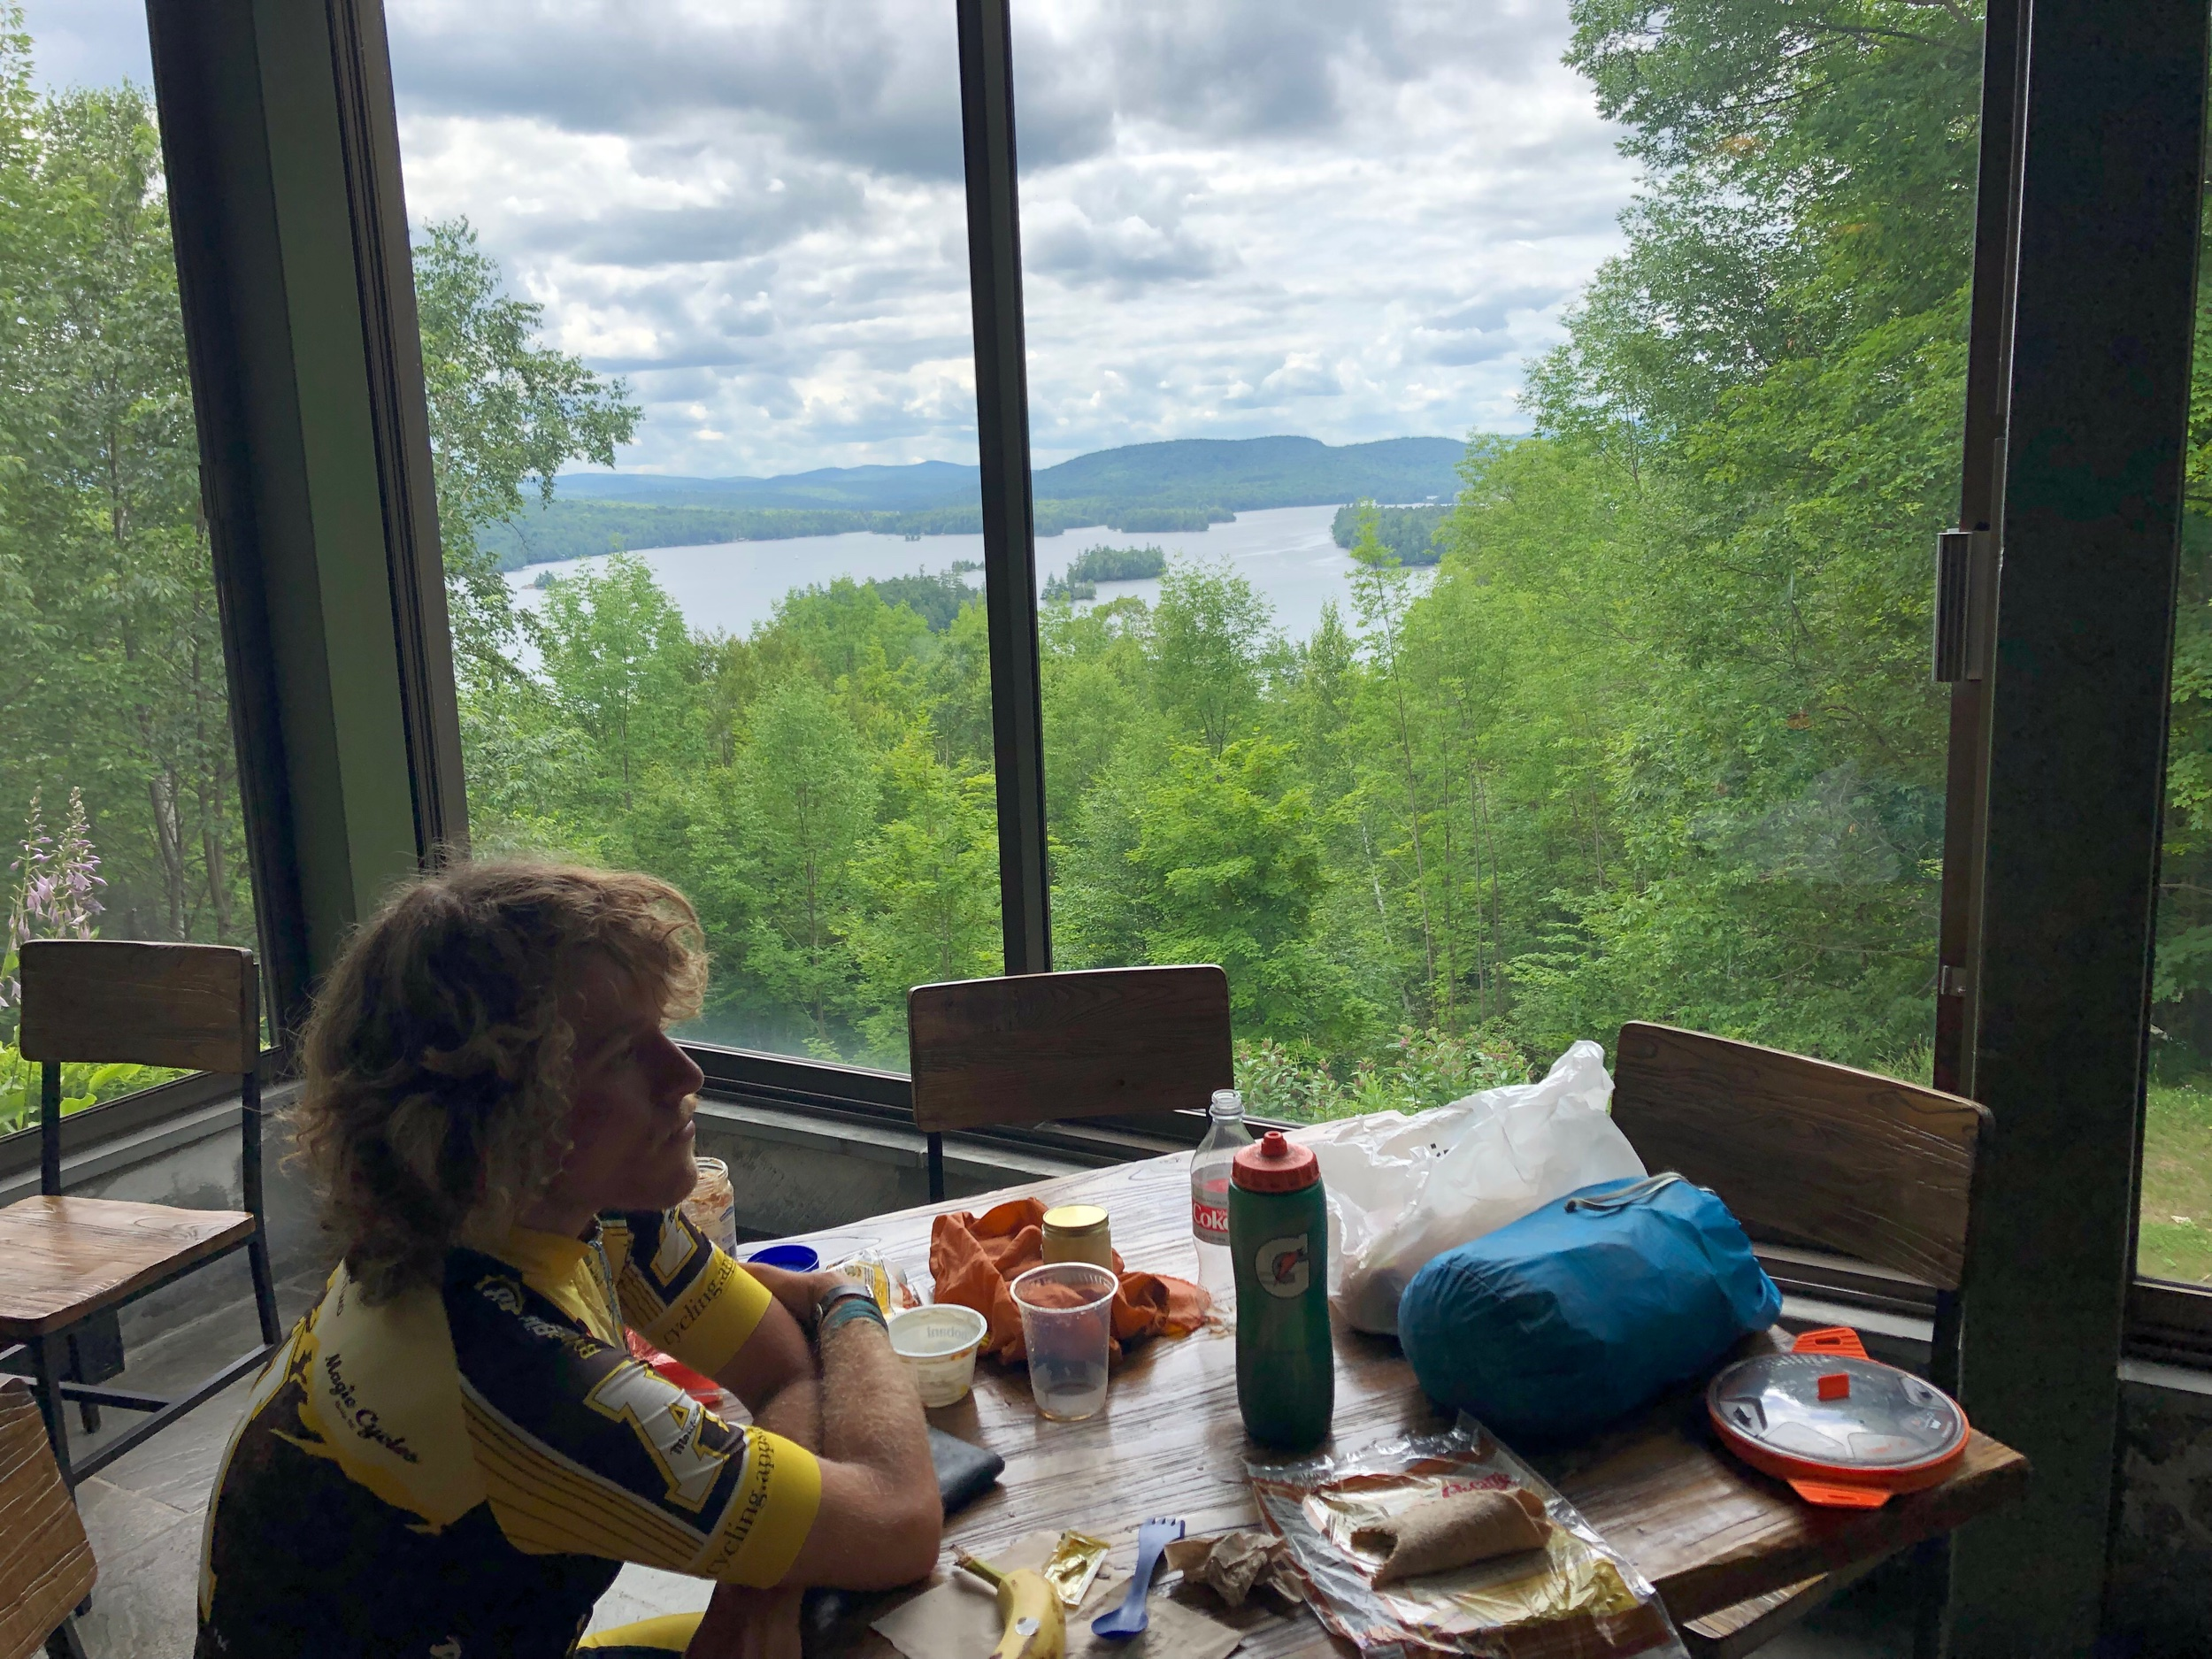 Lunch break at the Adirondack Museum